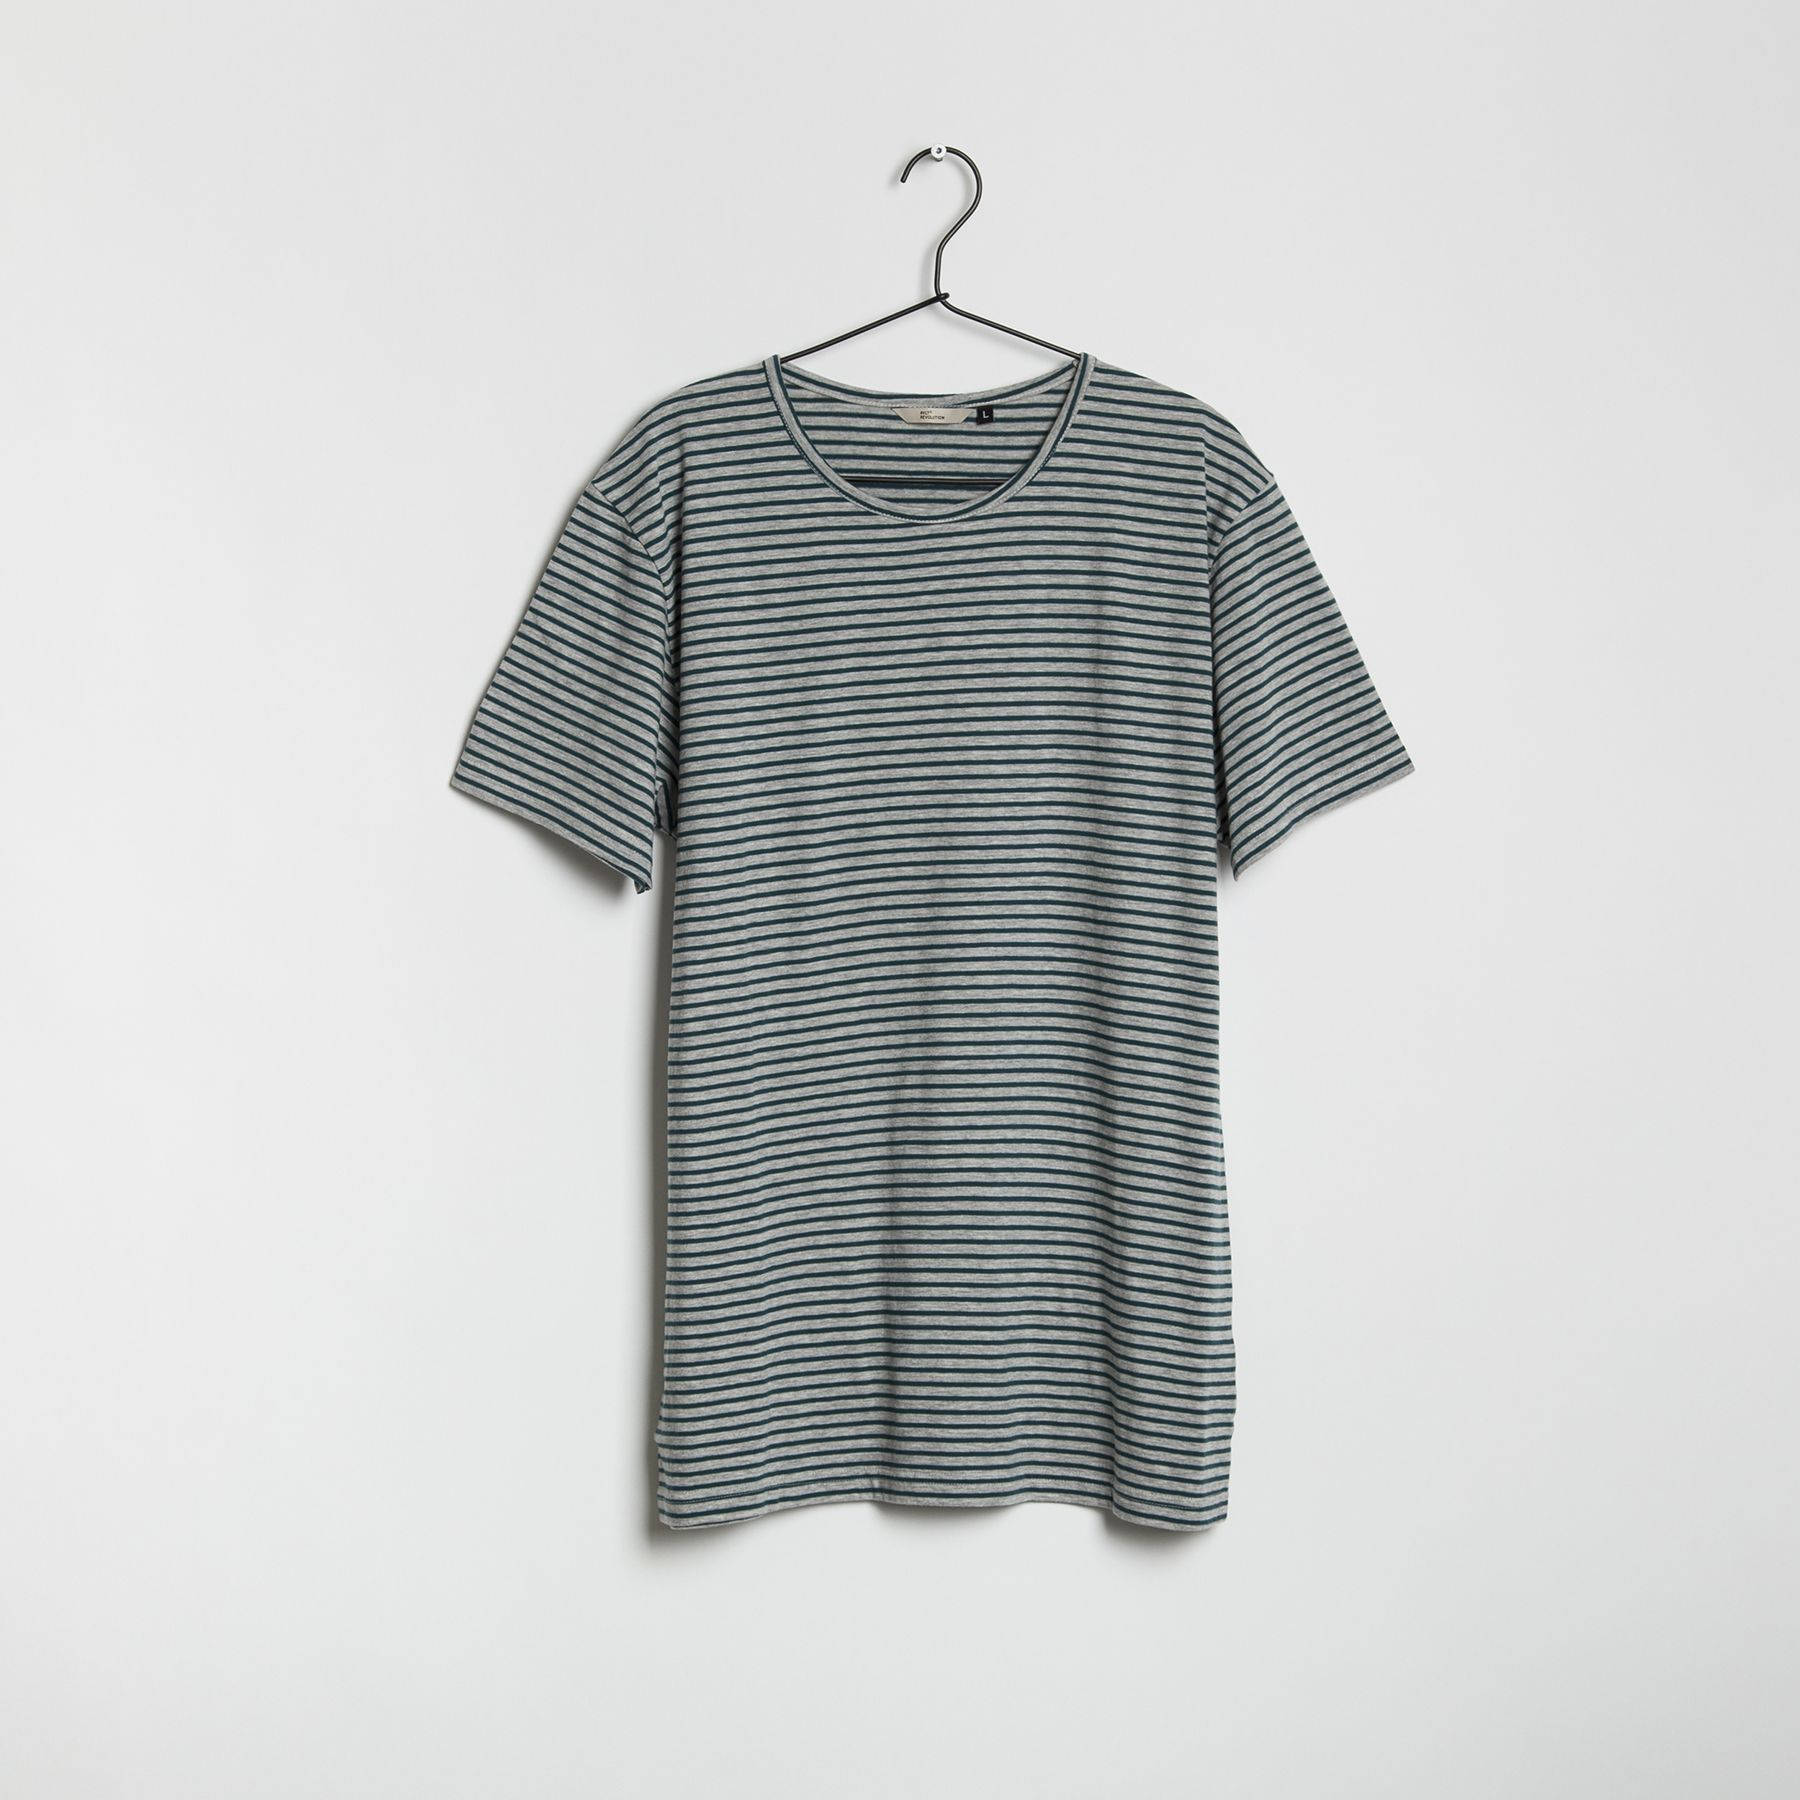 Style: 1005 green